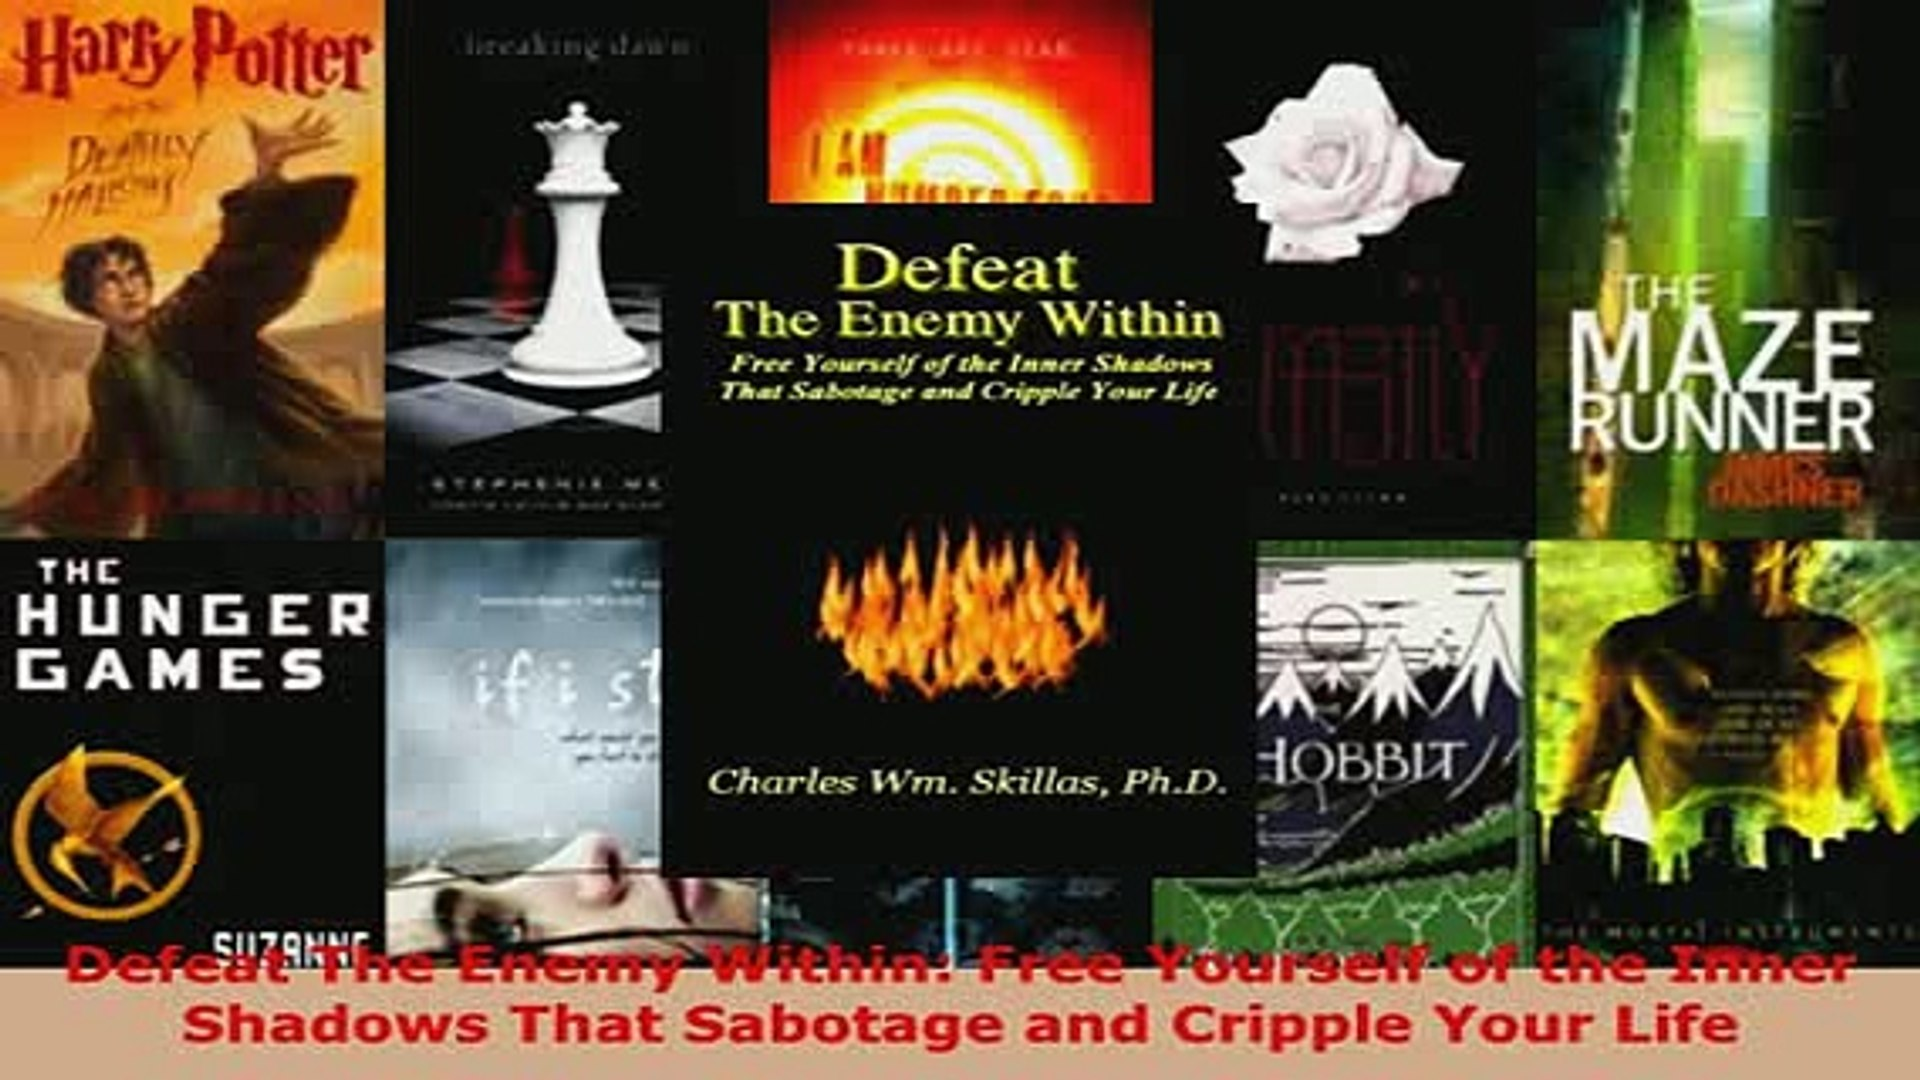 Defeat The Enemy Within: Free Yourself of the Inner Shadows That Sabotage and Cripple Your Life